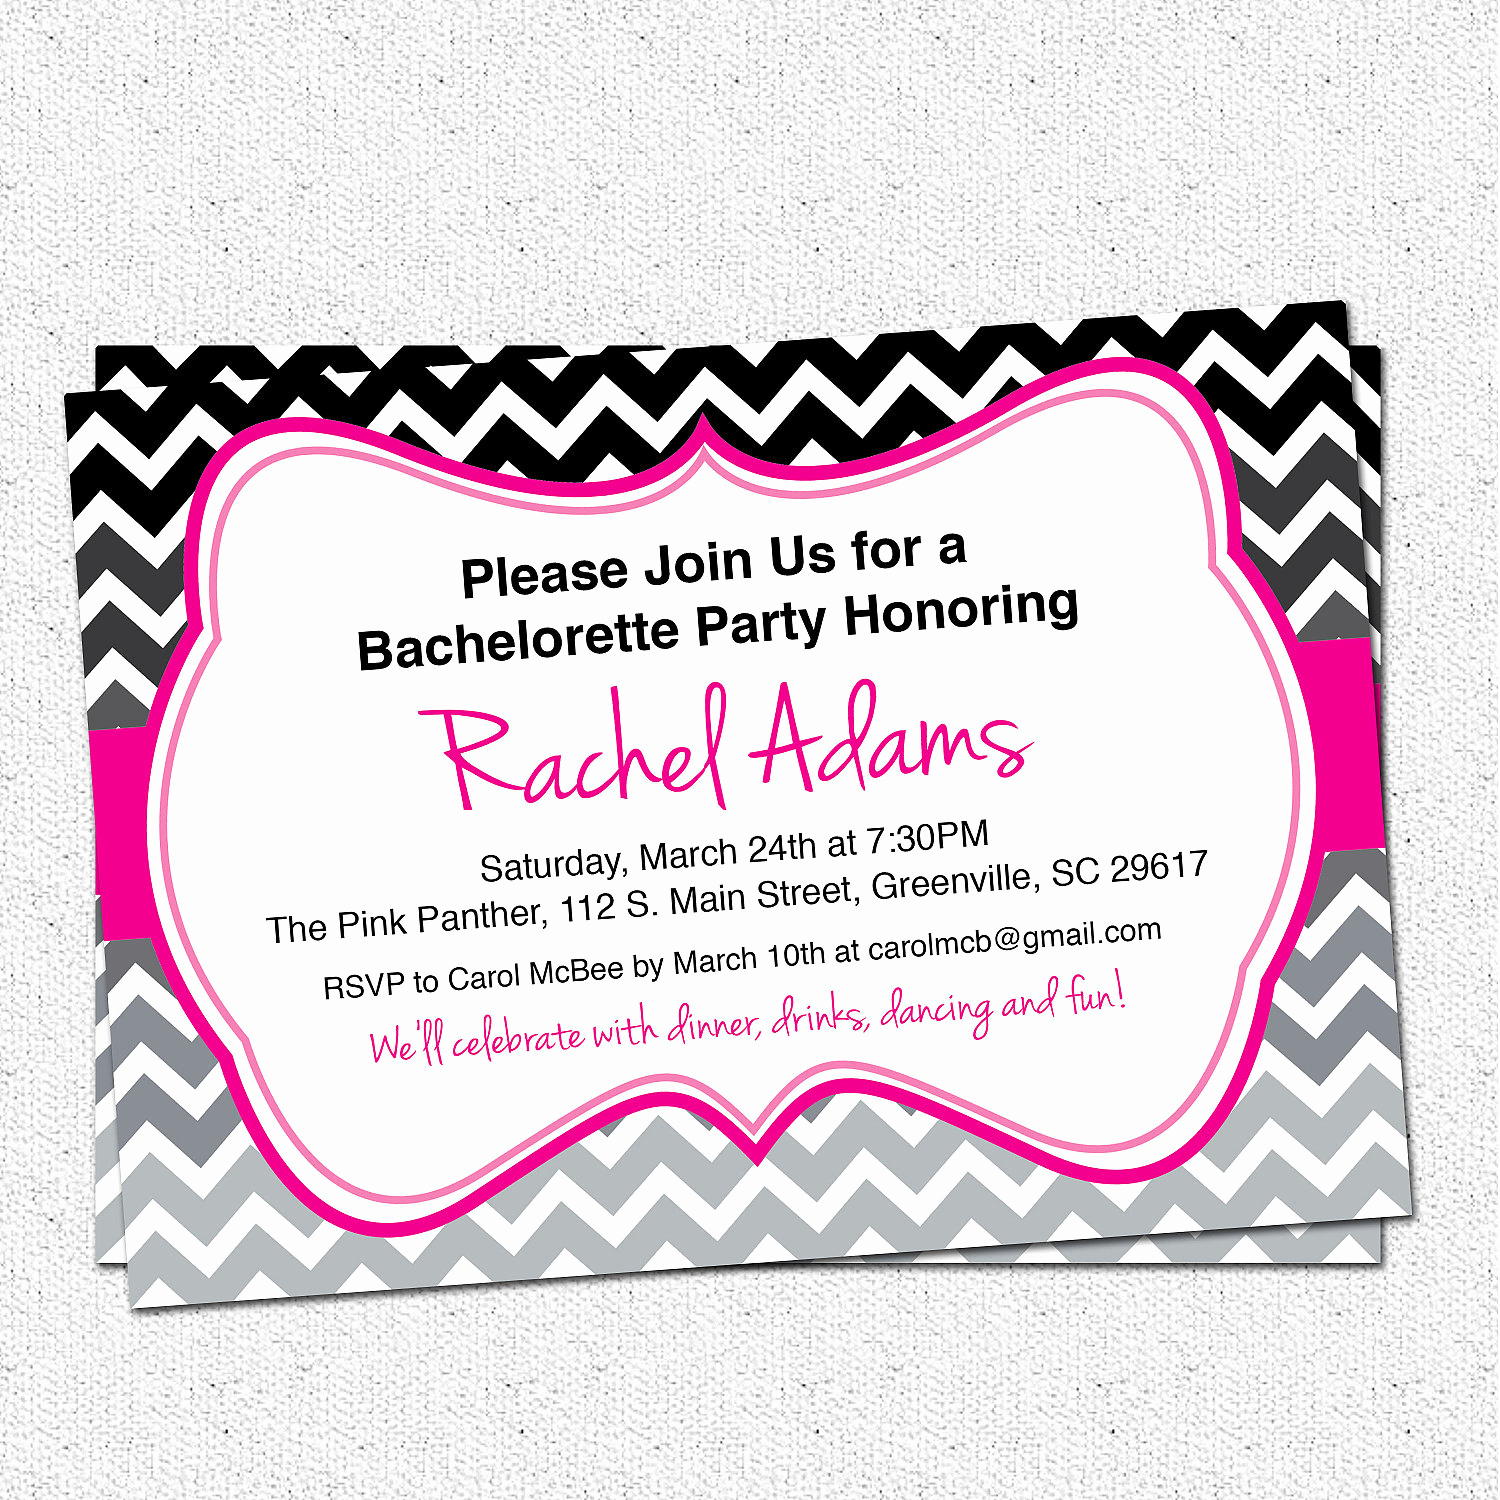 Bachelorette Party Invitation Template New Bachelorette Party Invitation Printable Bridal by